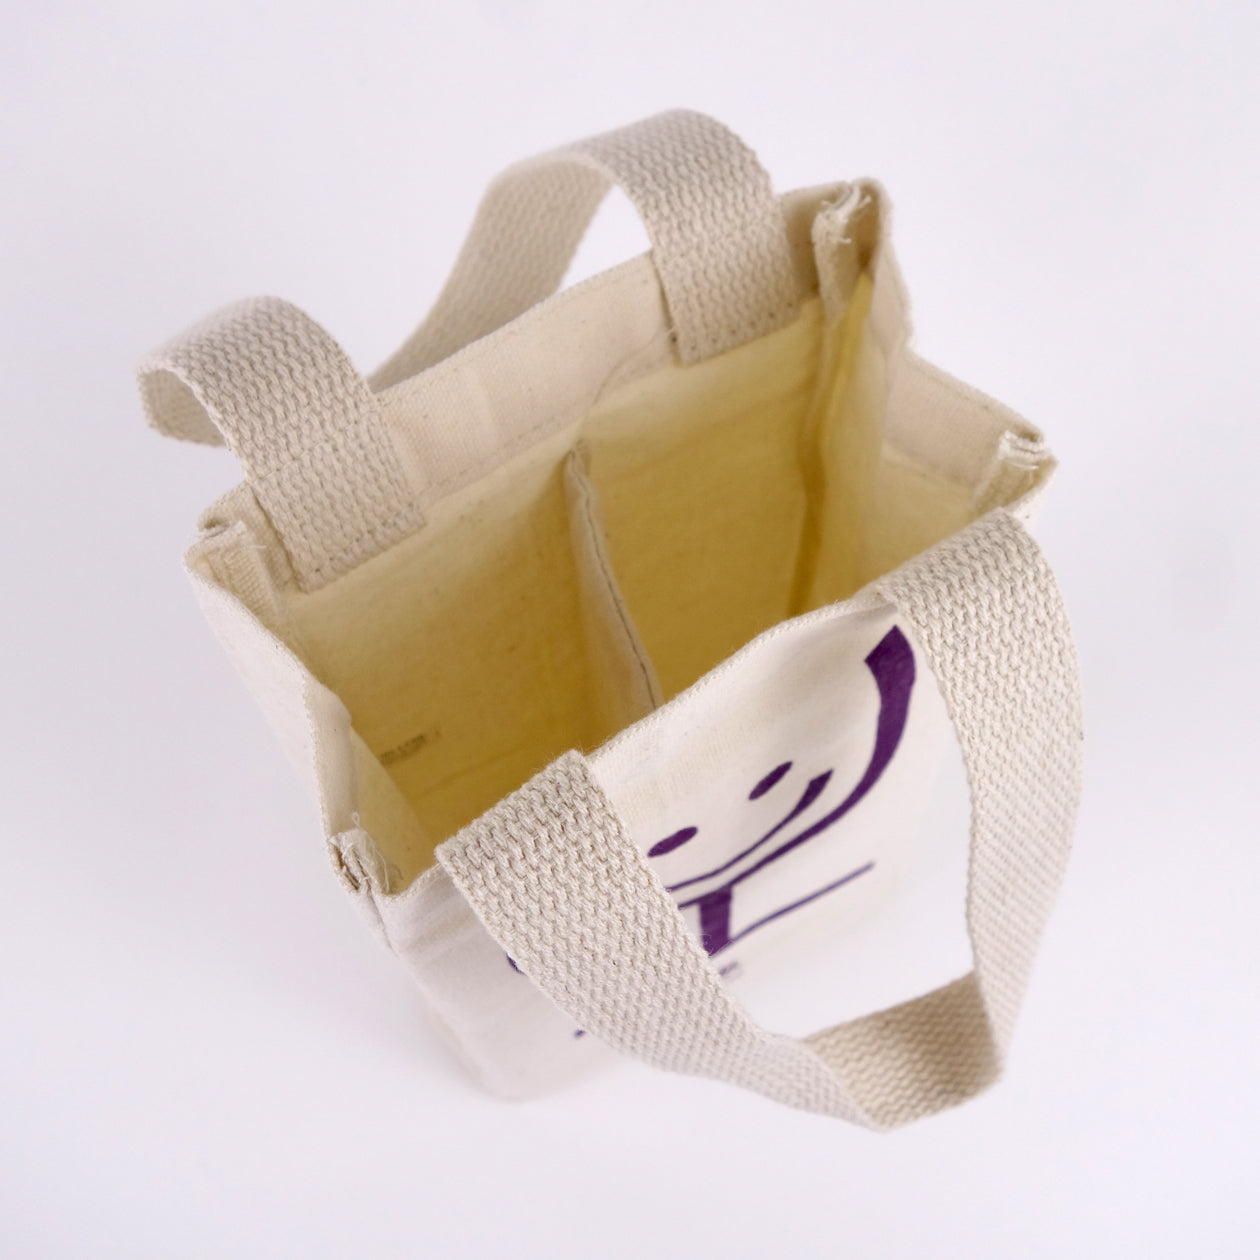 Interior detail of a canvas wine tote showing a center divider to hold two wine bottles.